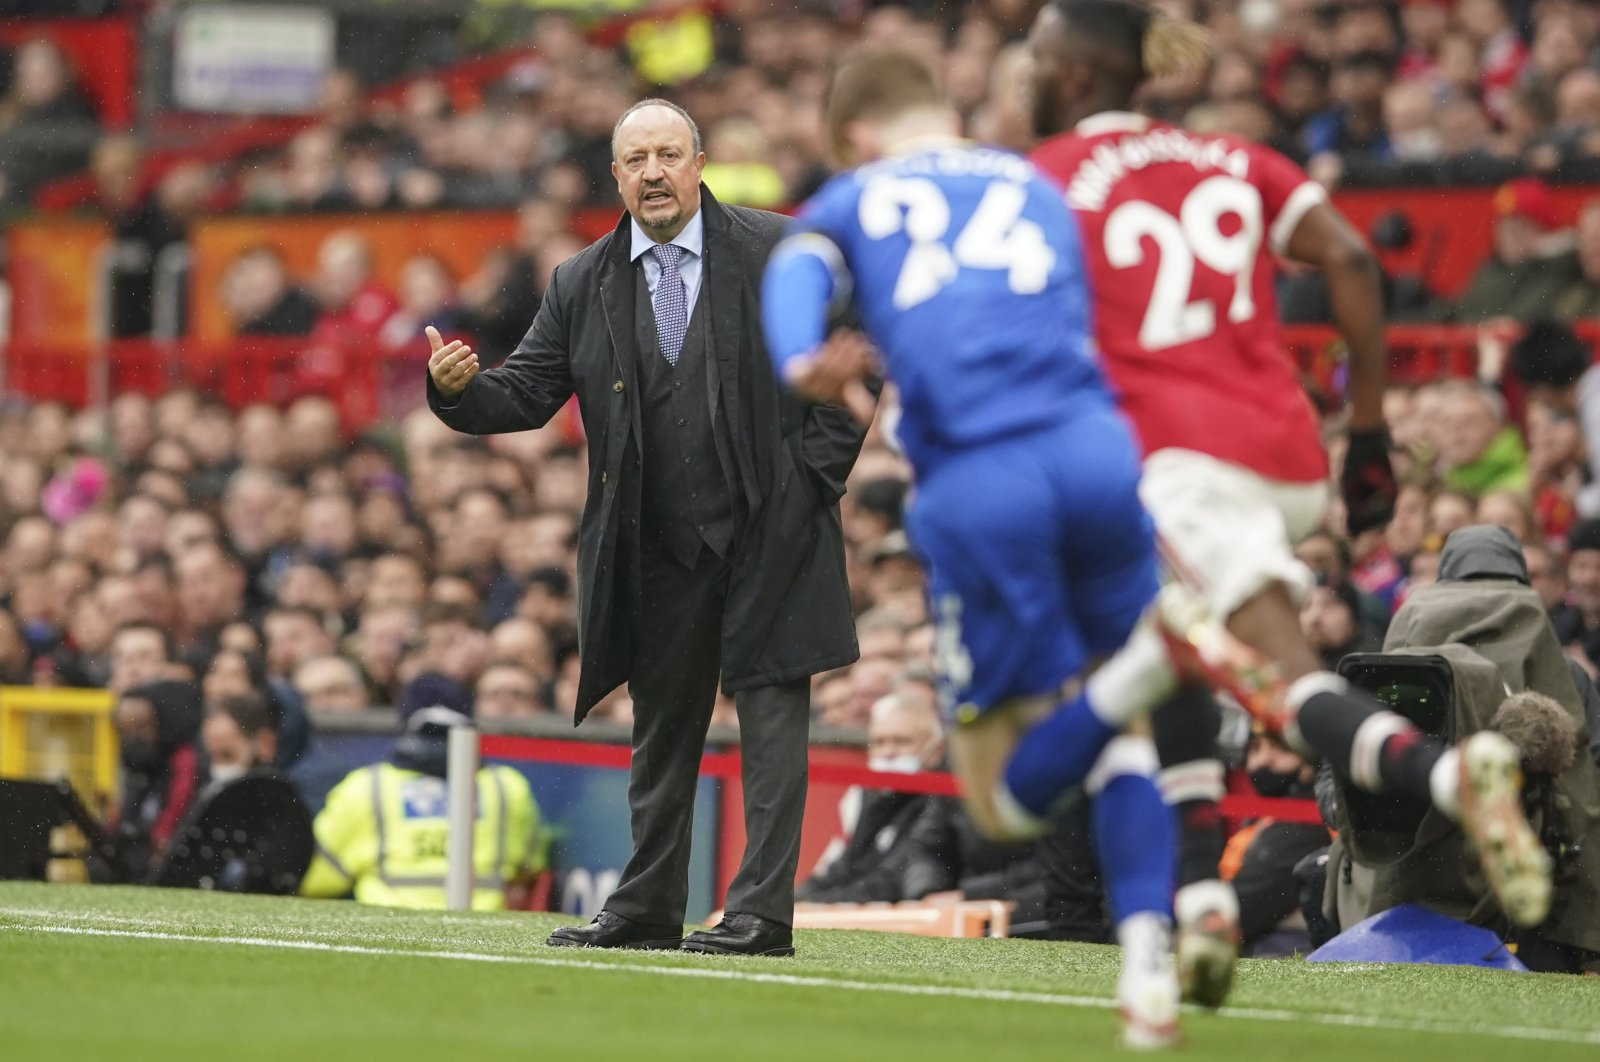 Everton manager Rafael Benitez gives instructions during a Premier League match against Manchester United at Old Trafford, Manchester, England, Oct. 2, 2021. (AP Photo)